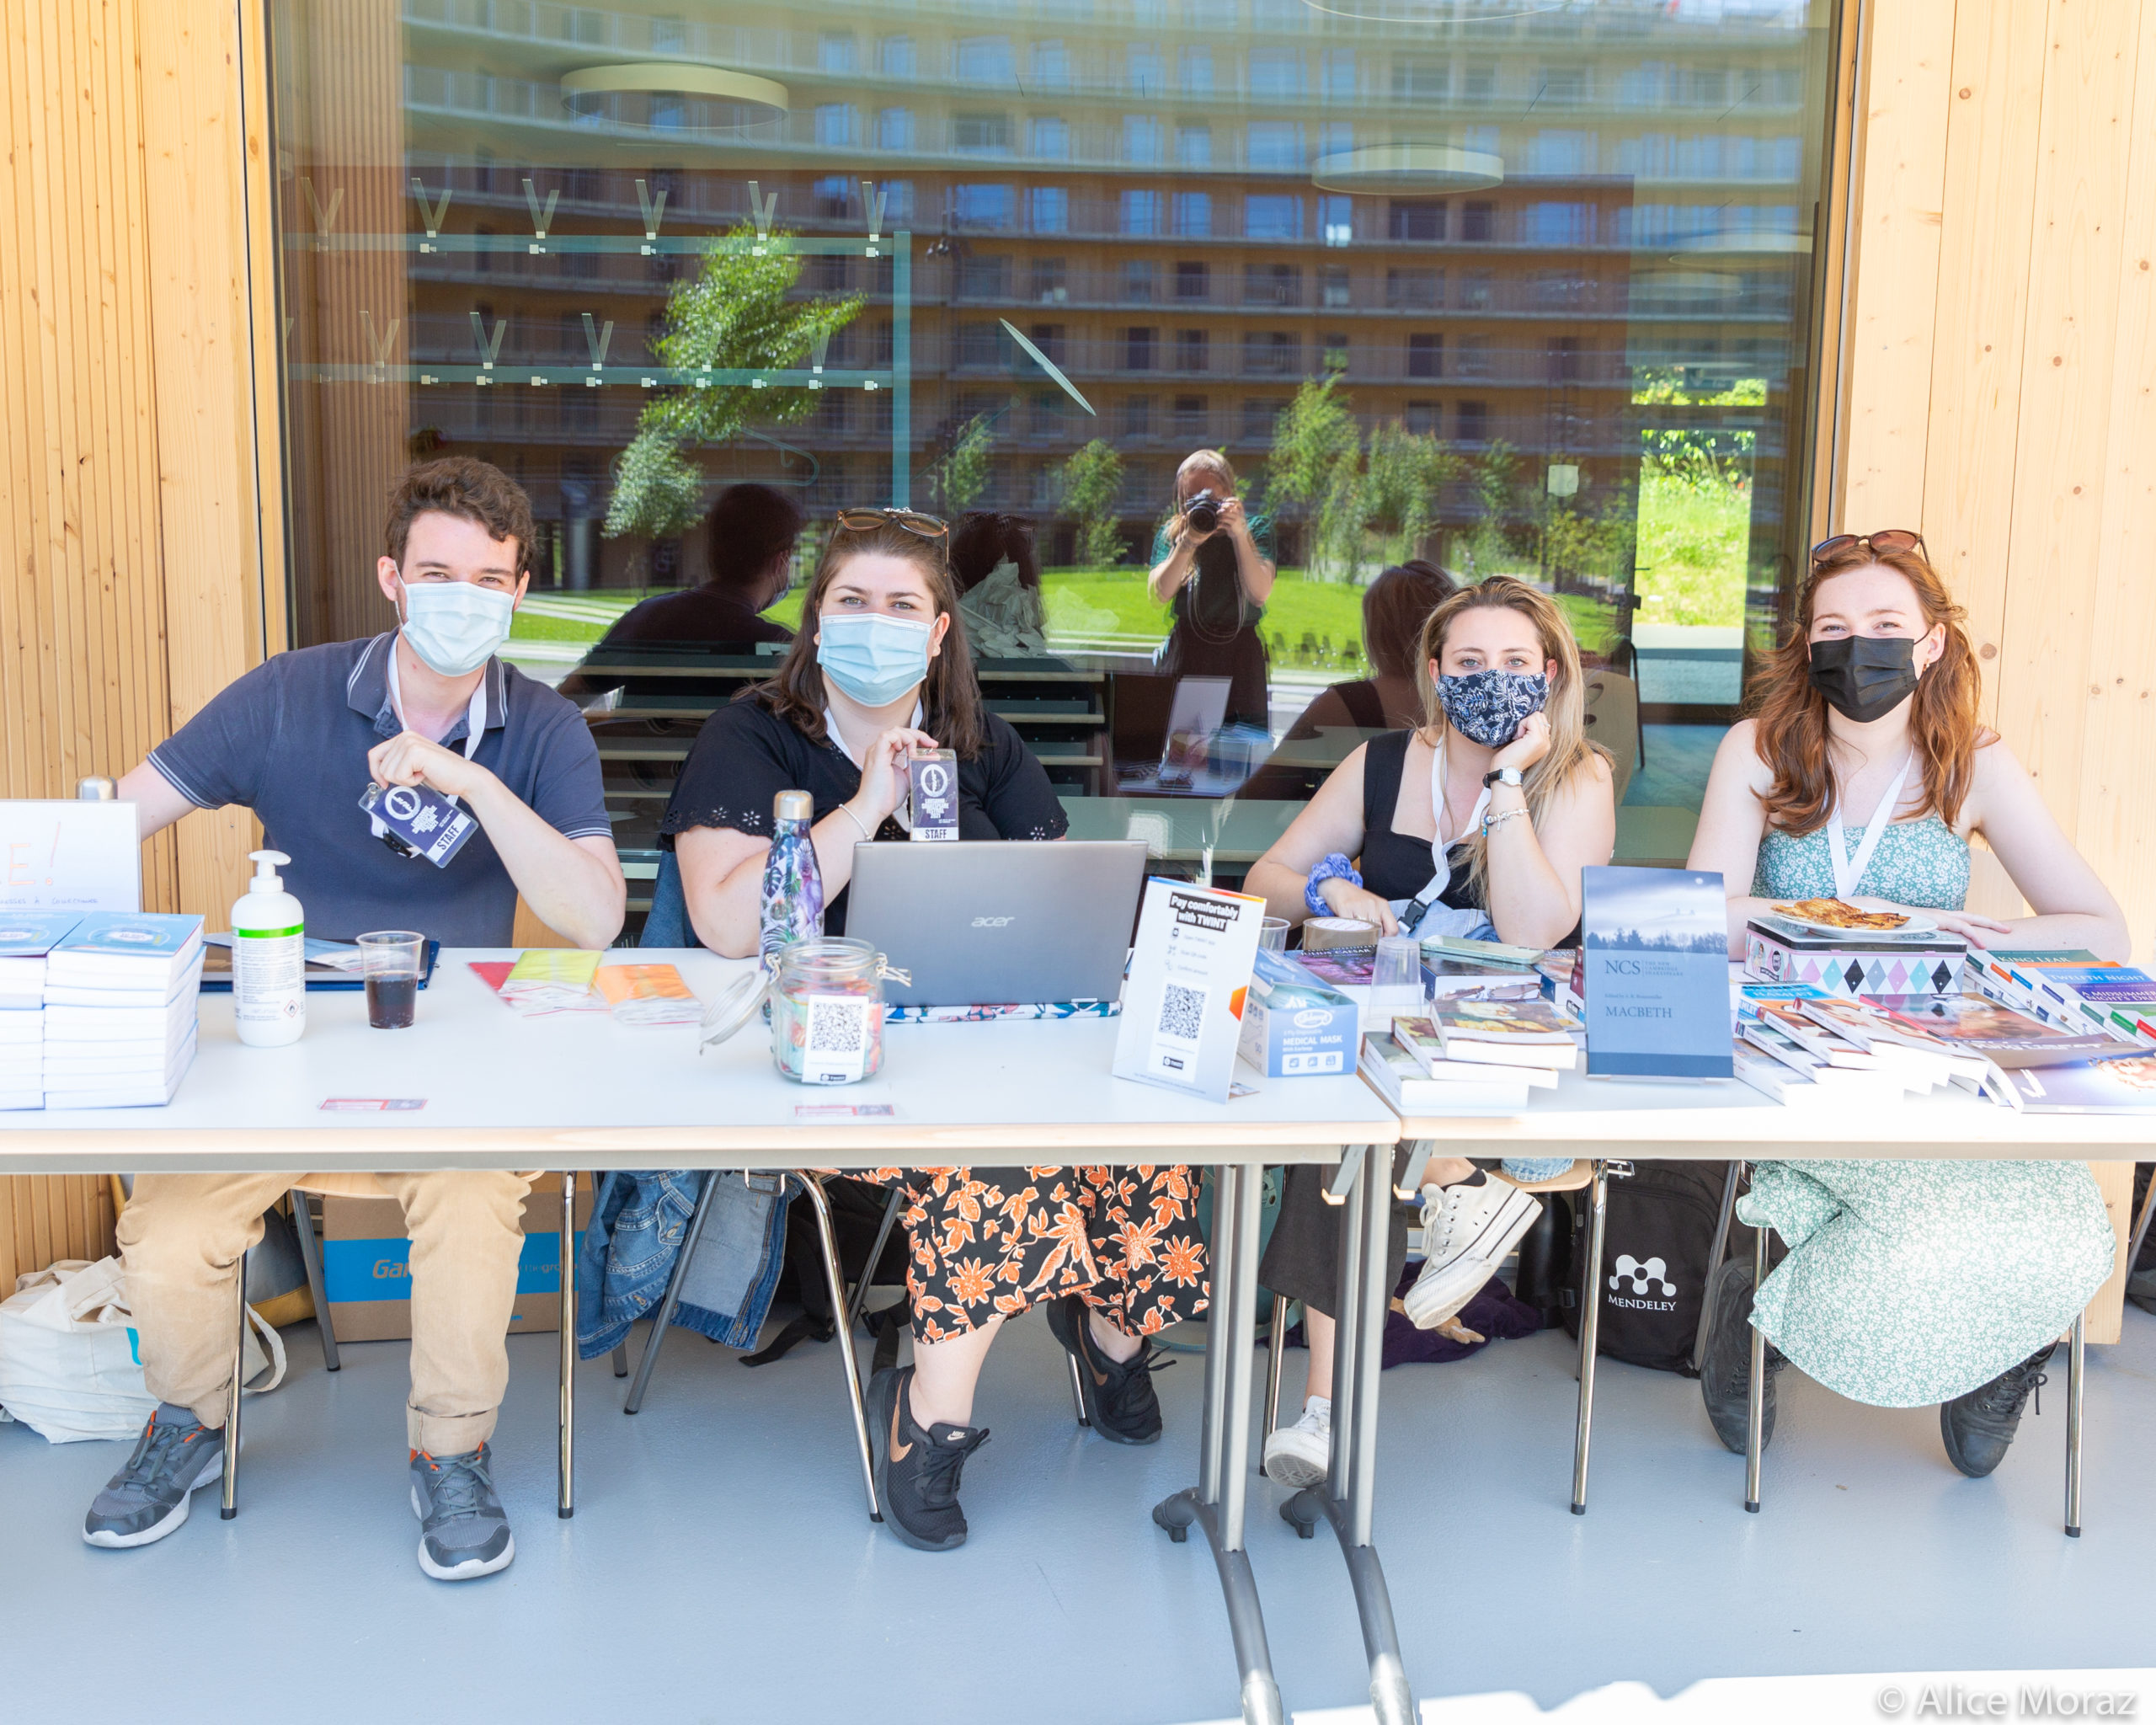 Four volunteers sit at a table. There are three women and a man. They are all wearing surgical masks.